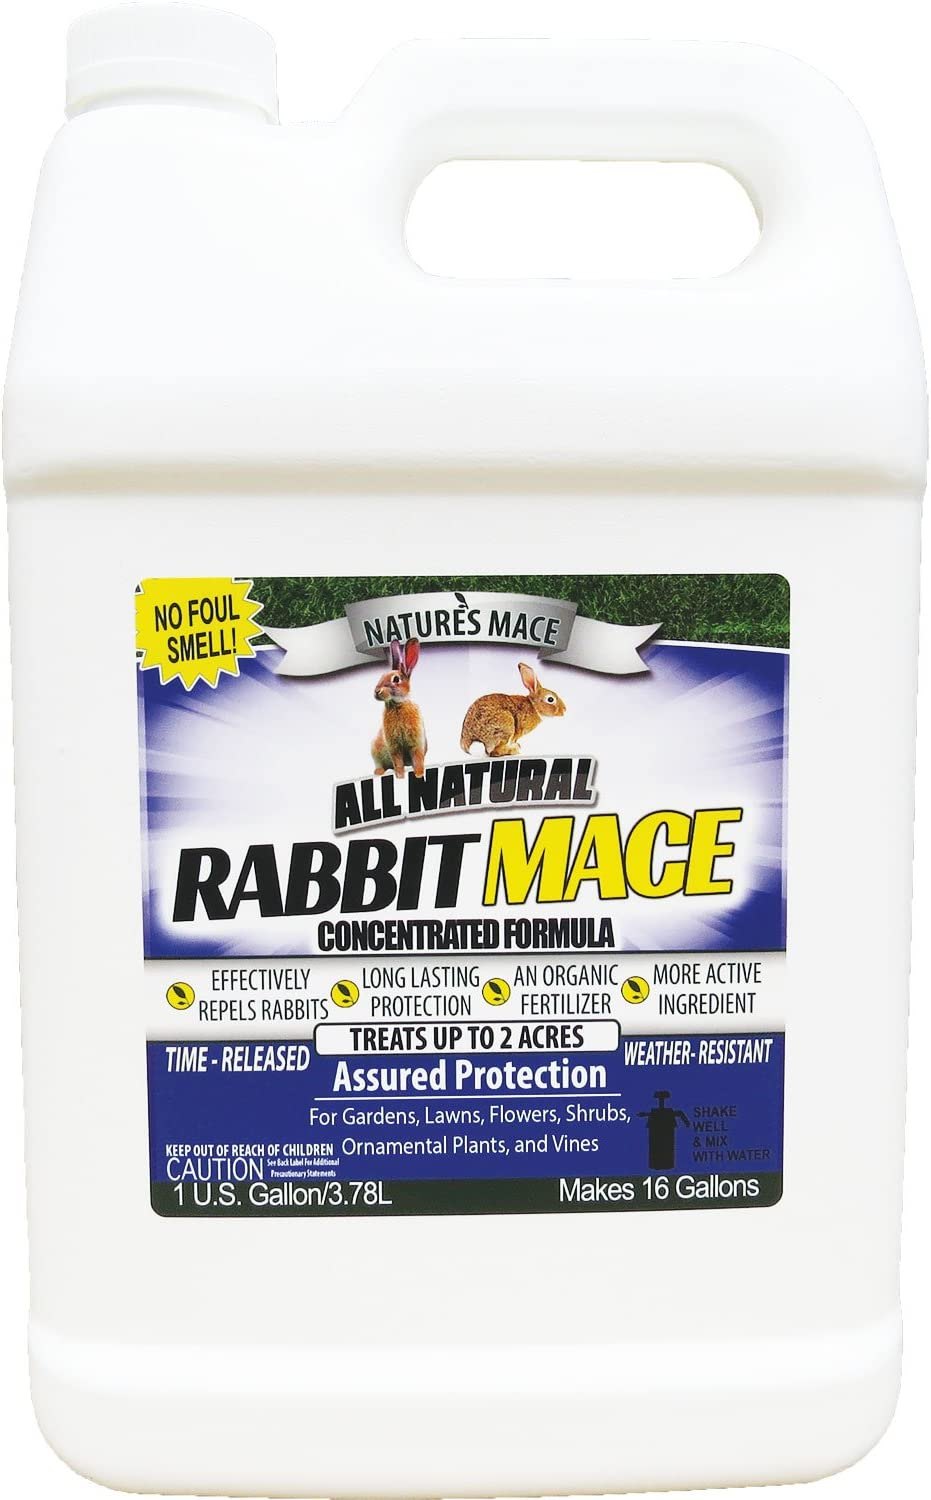 Nature's Mace Rabbit Mace 1 Gal Concentrate/Covers 2 Acers/Rabbit Repellent and Deterrent/Keep Rabbits Out of Your Lawn and Garden/Safe to use Around Children & Plants